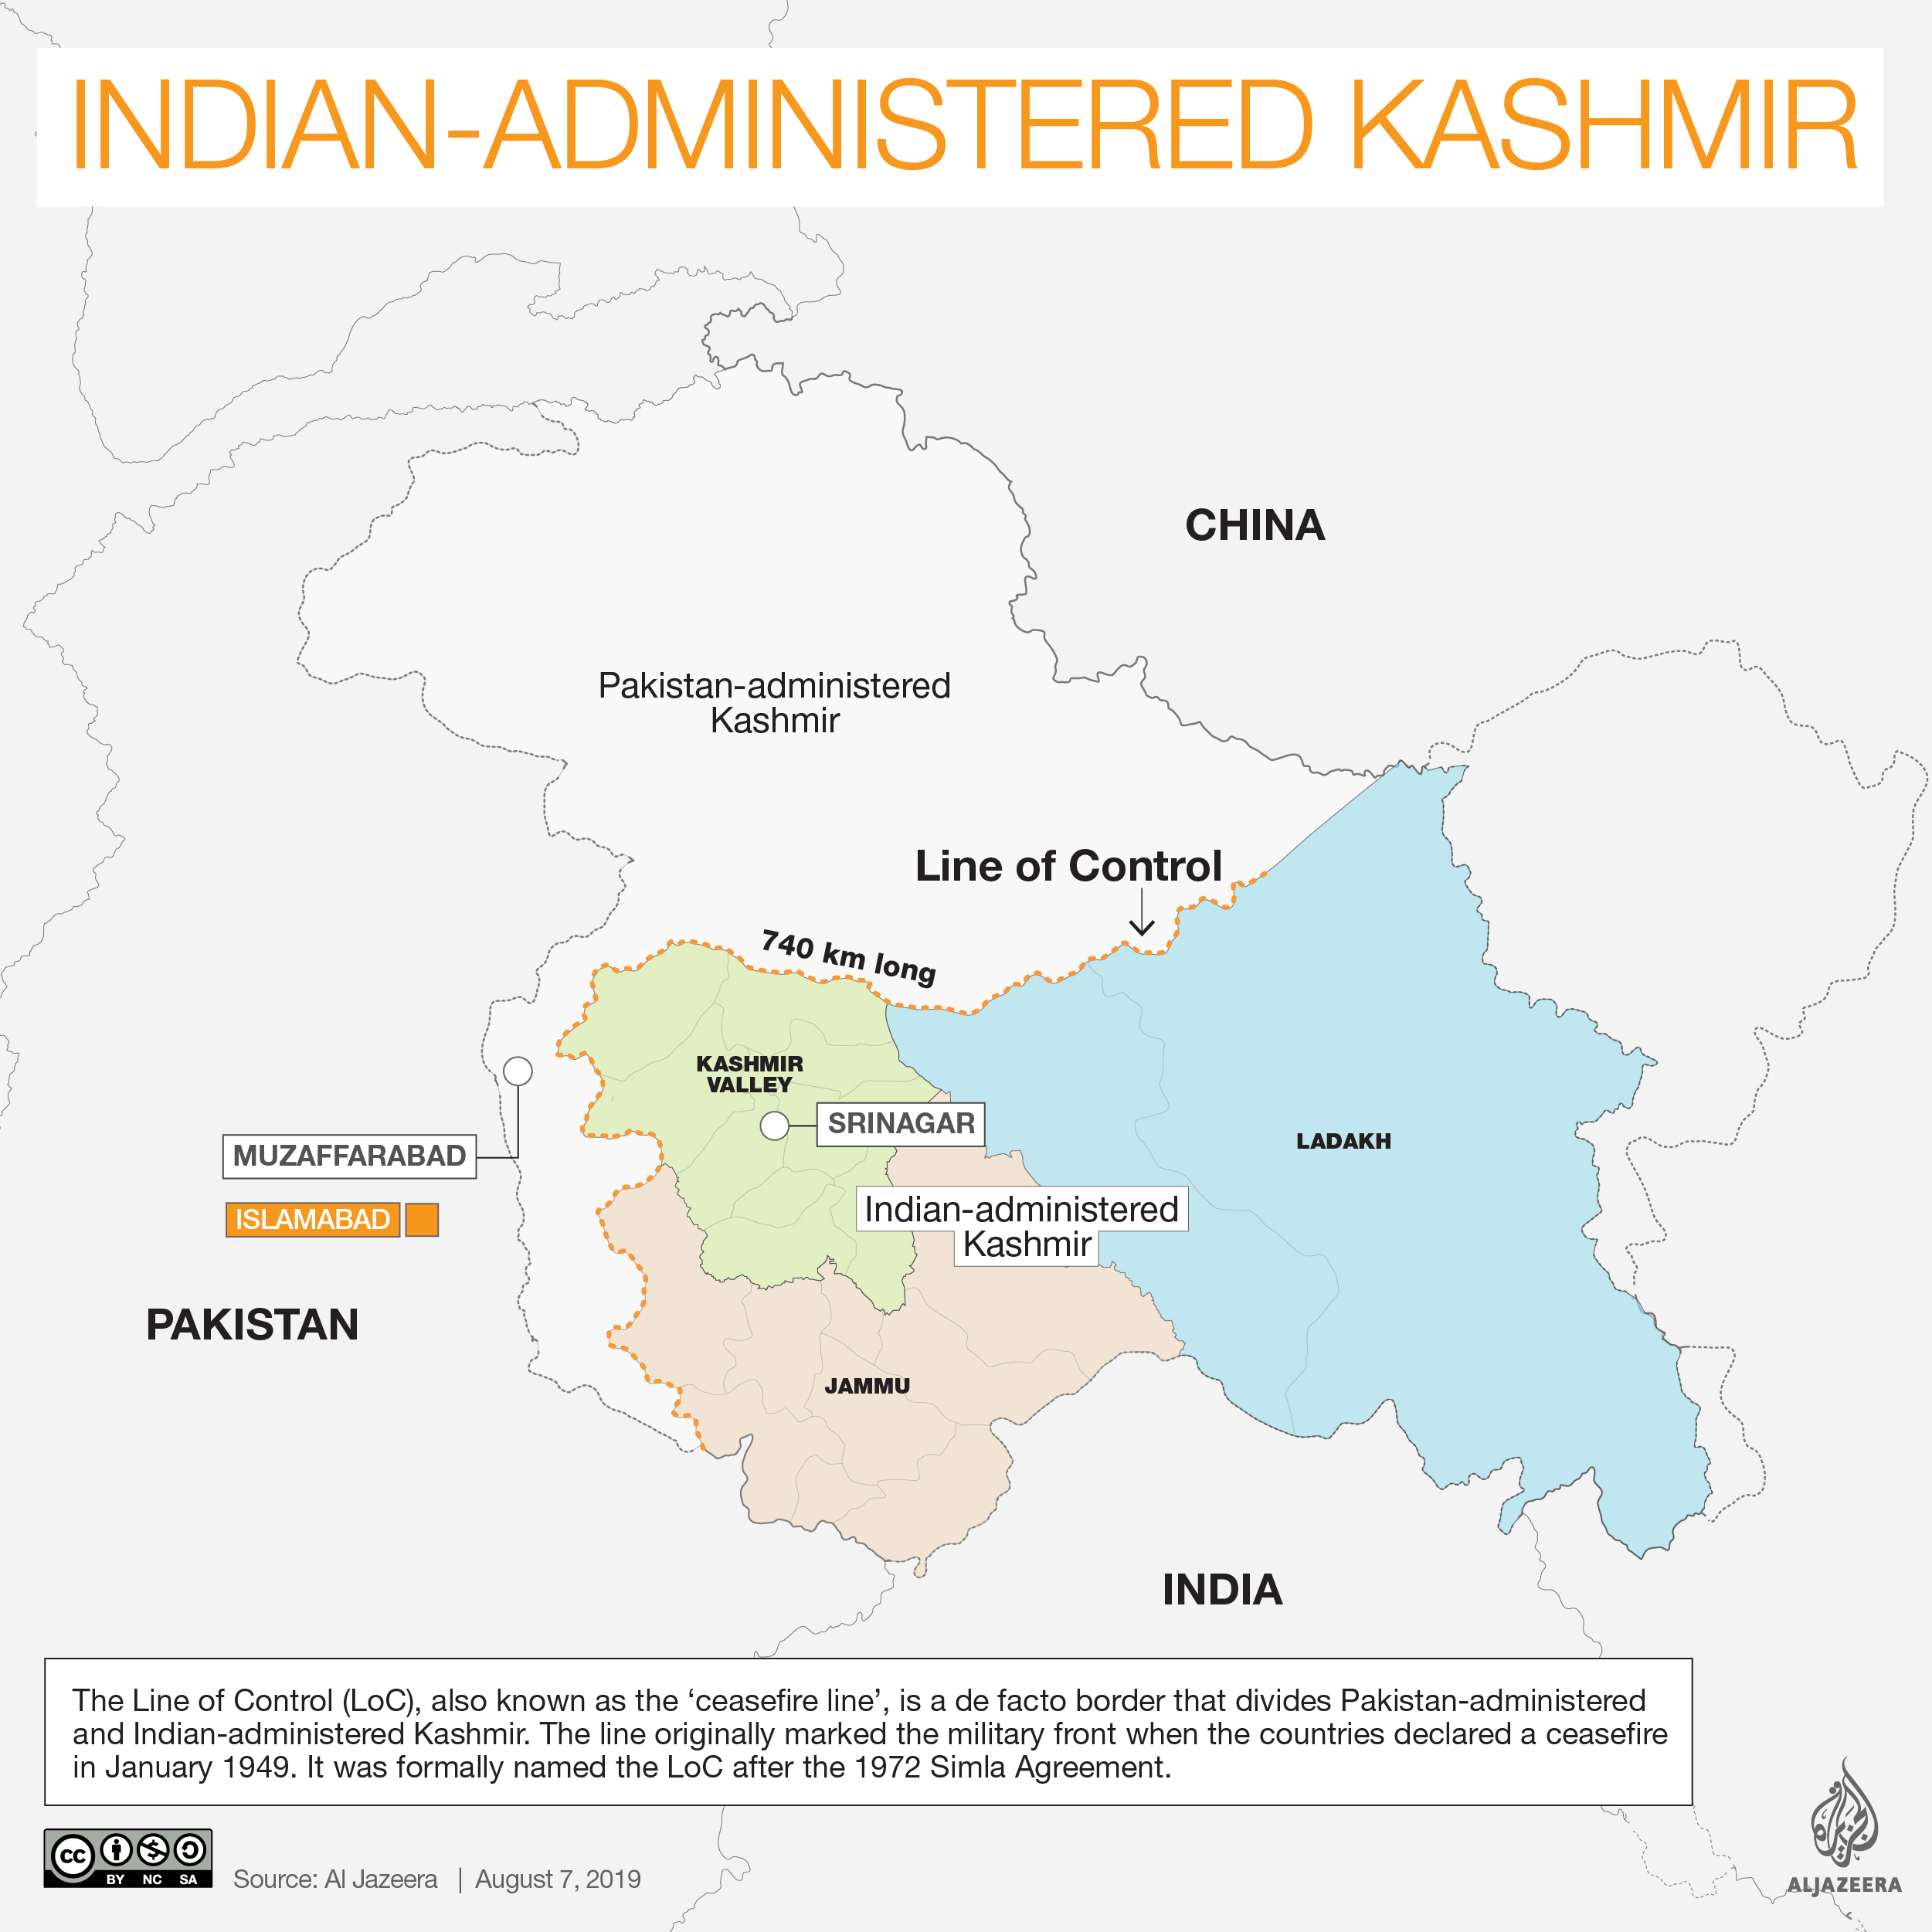 INTERACTIVE: Kashmir map without Siachen - Aug 7 2019